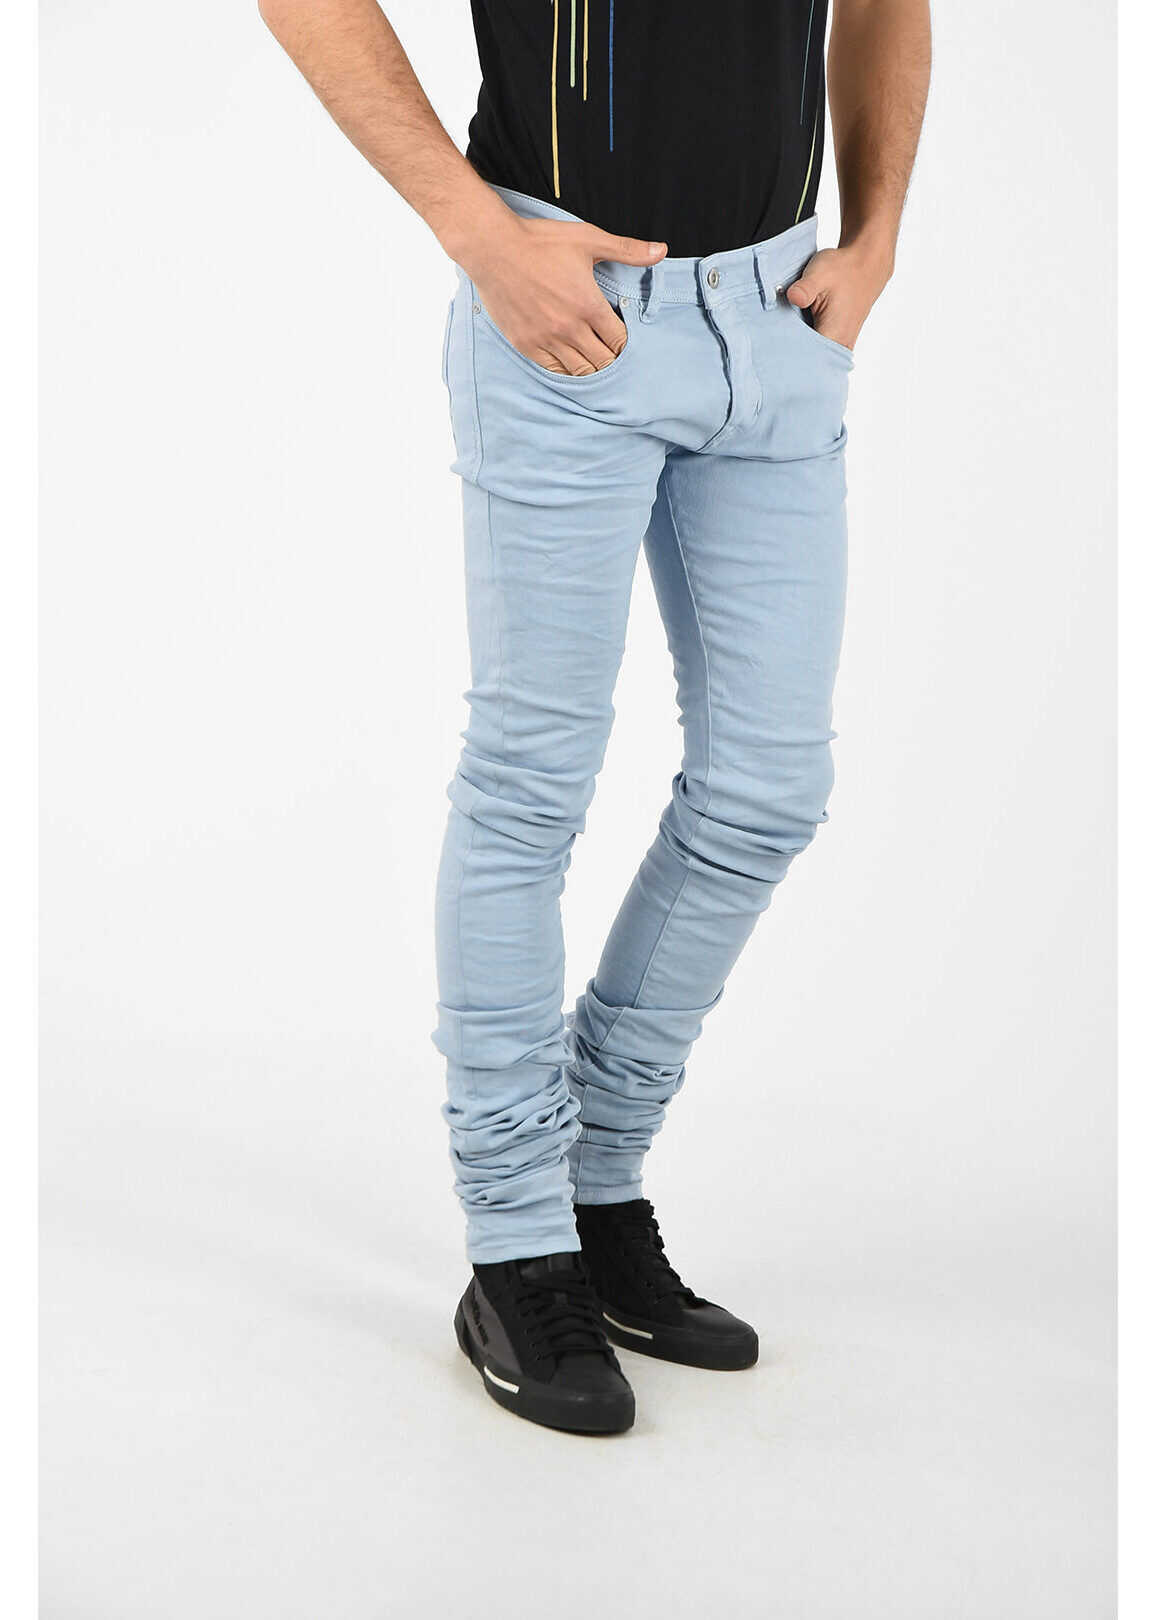 Diesel BLACK GOLD 16cm Skinny Fit TYPE-2614 Jeans LIGHT BLUE imagine